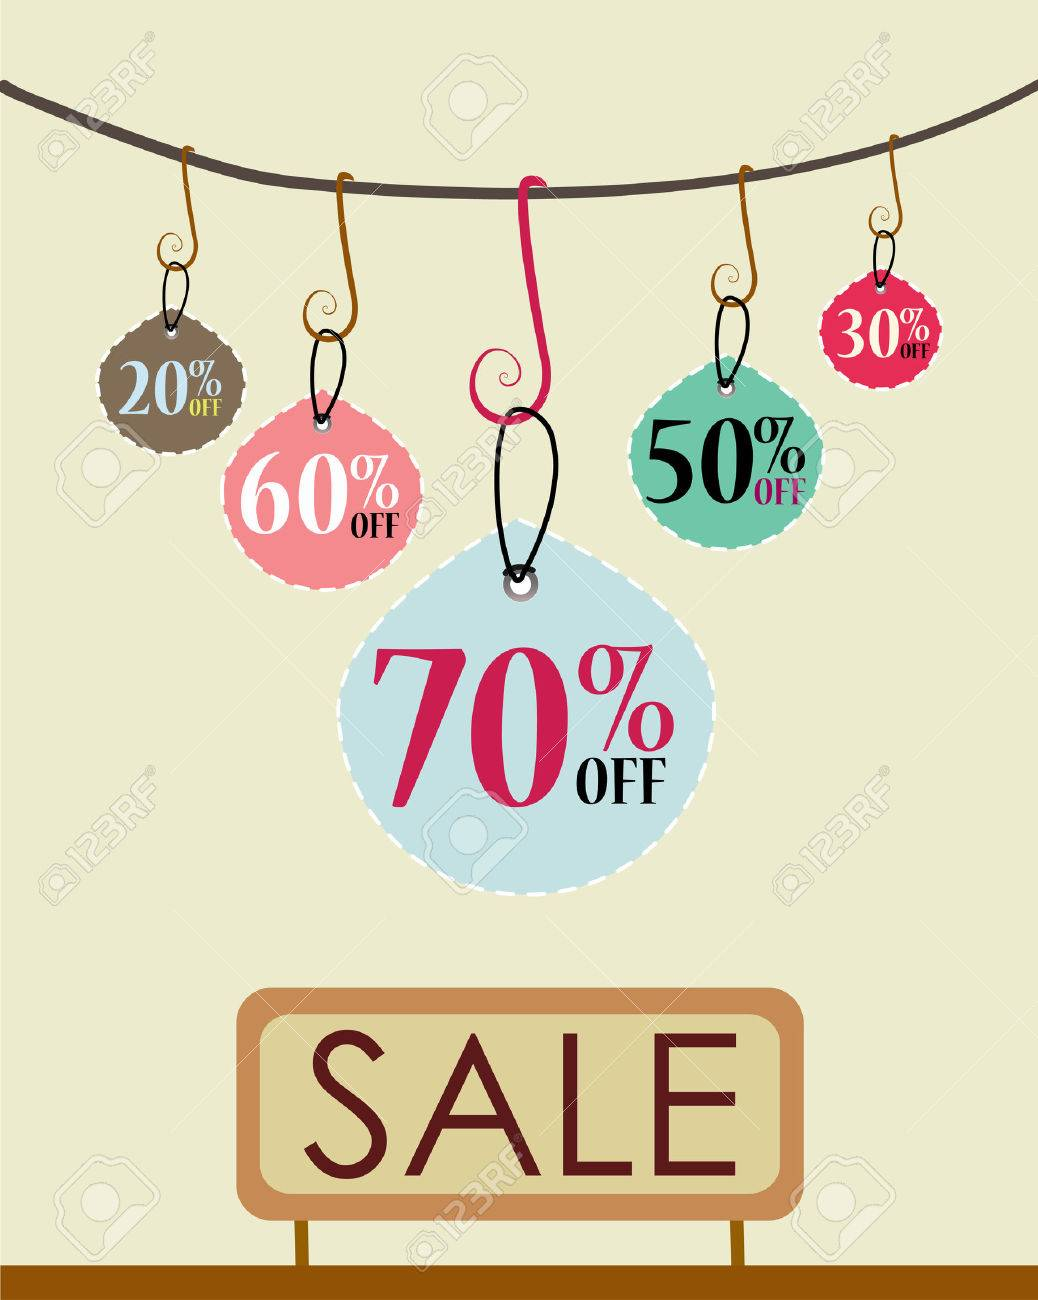 Sales Tags - Sale Poster Template Royalty Free Cliparts, Vectors ...